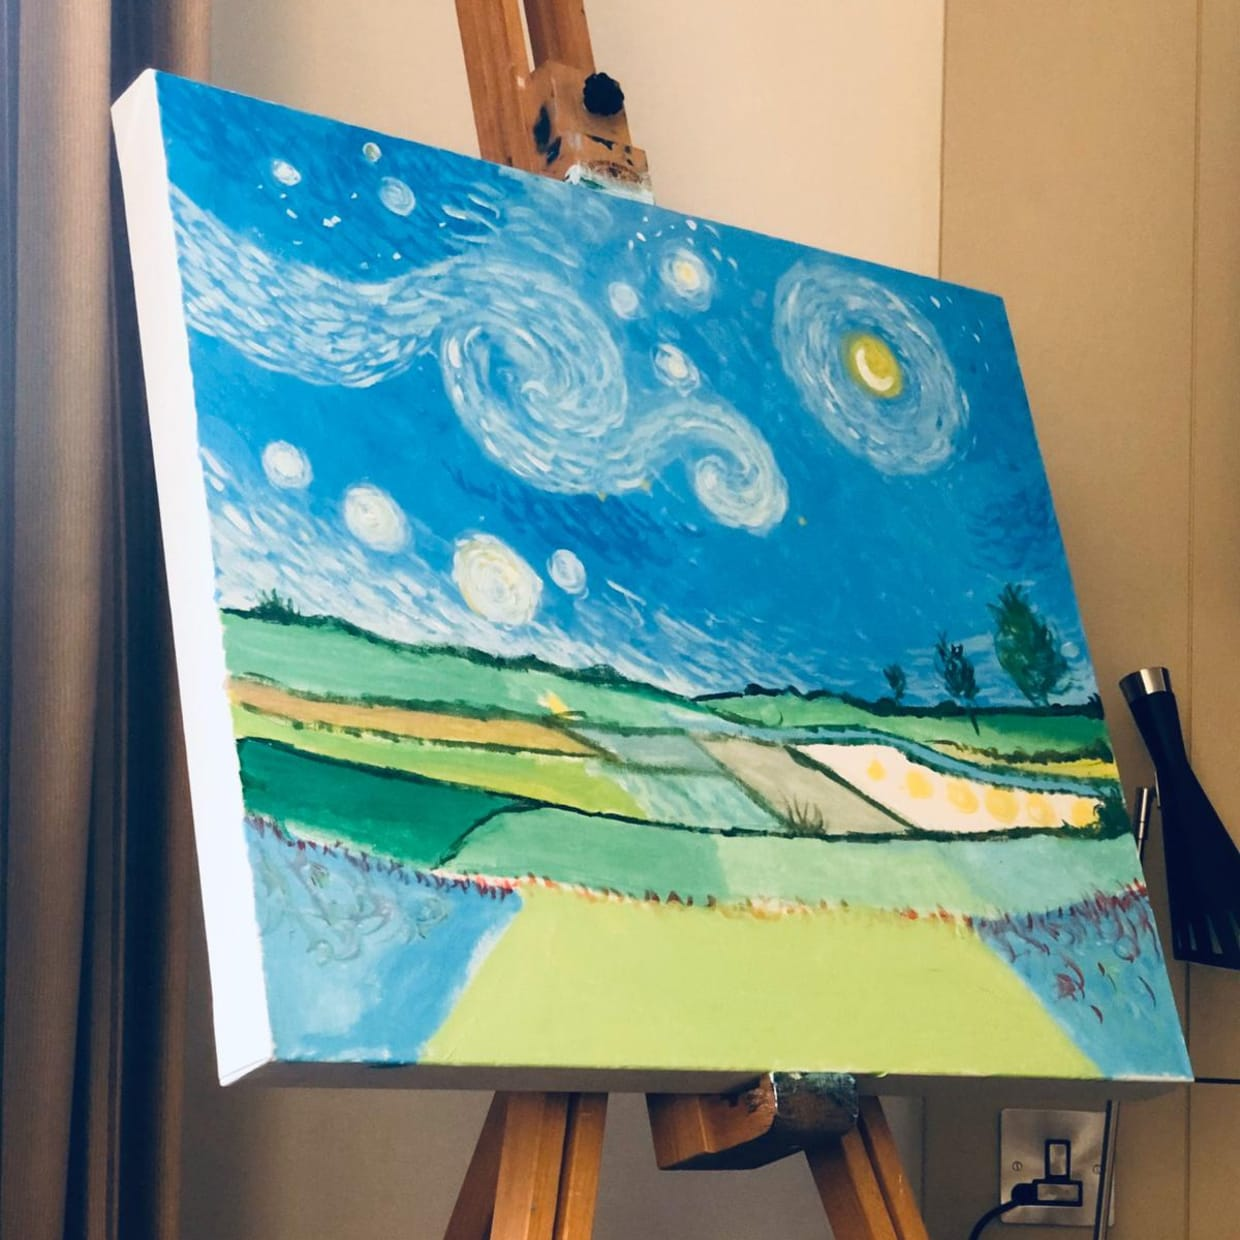 Van Gogh Commission